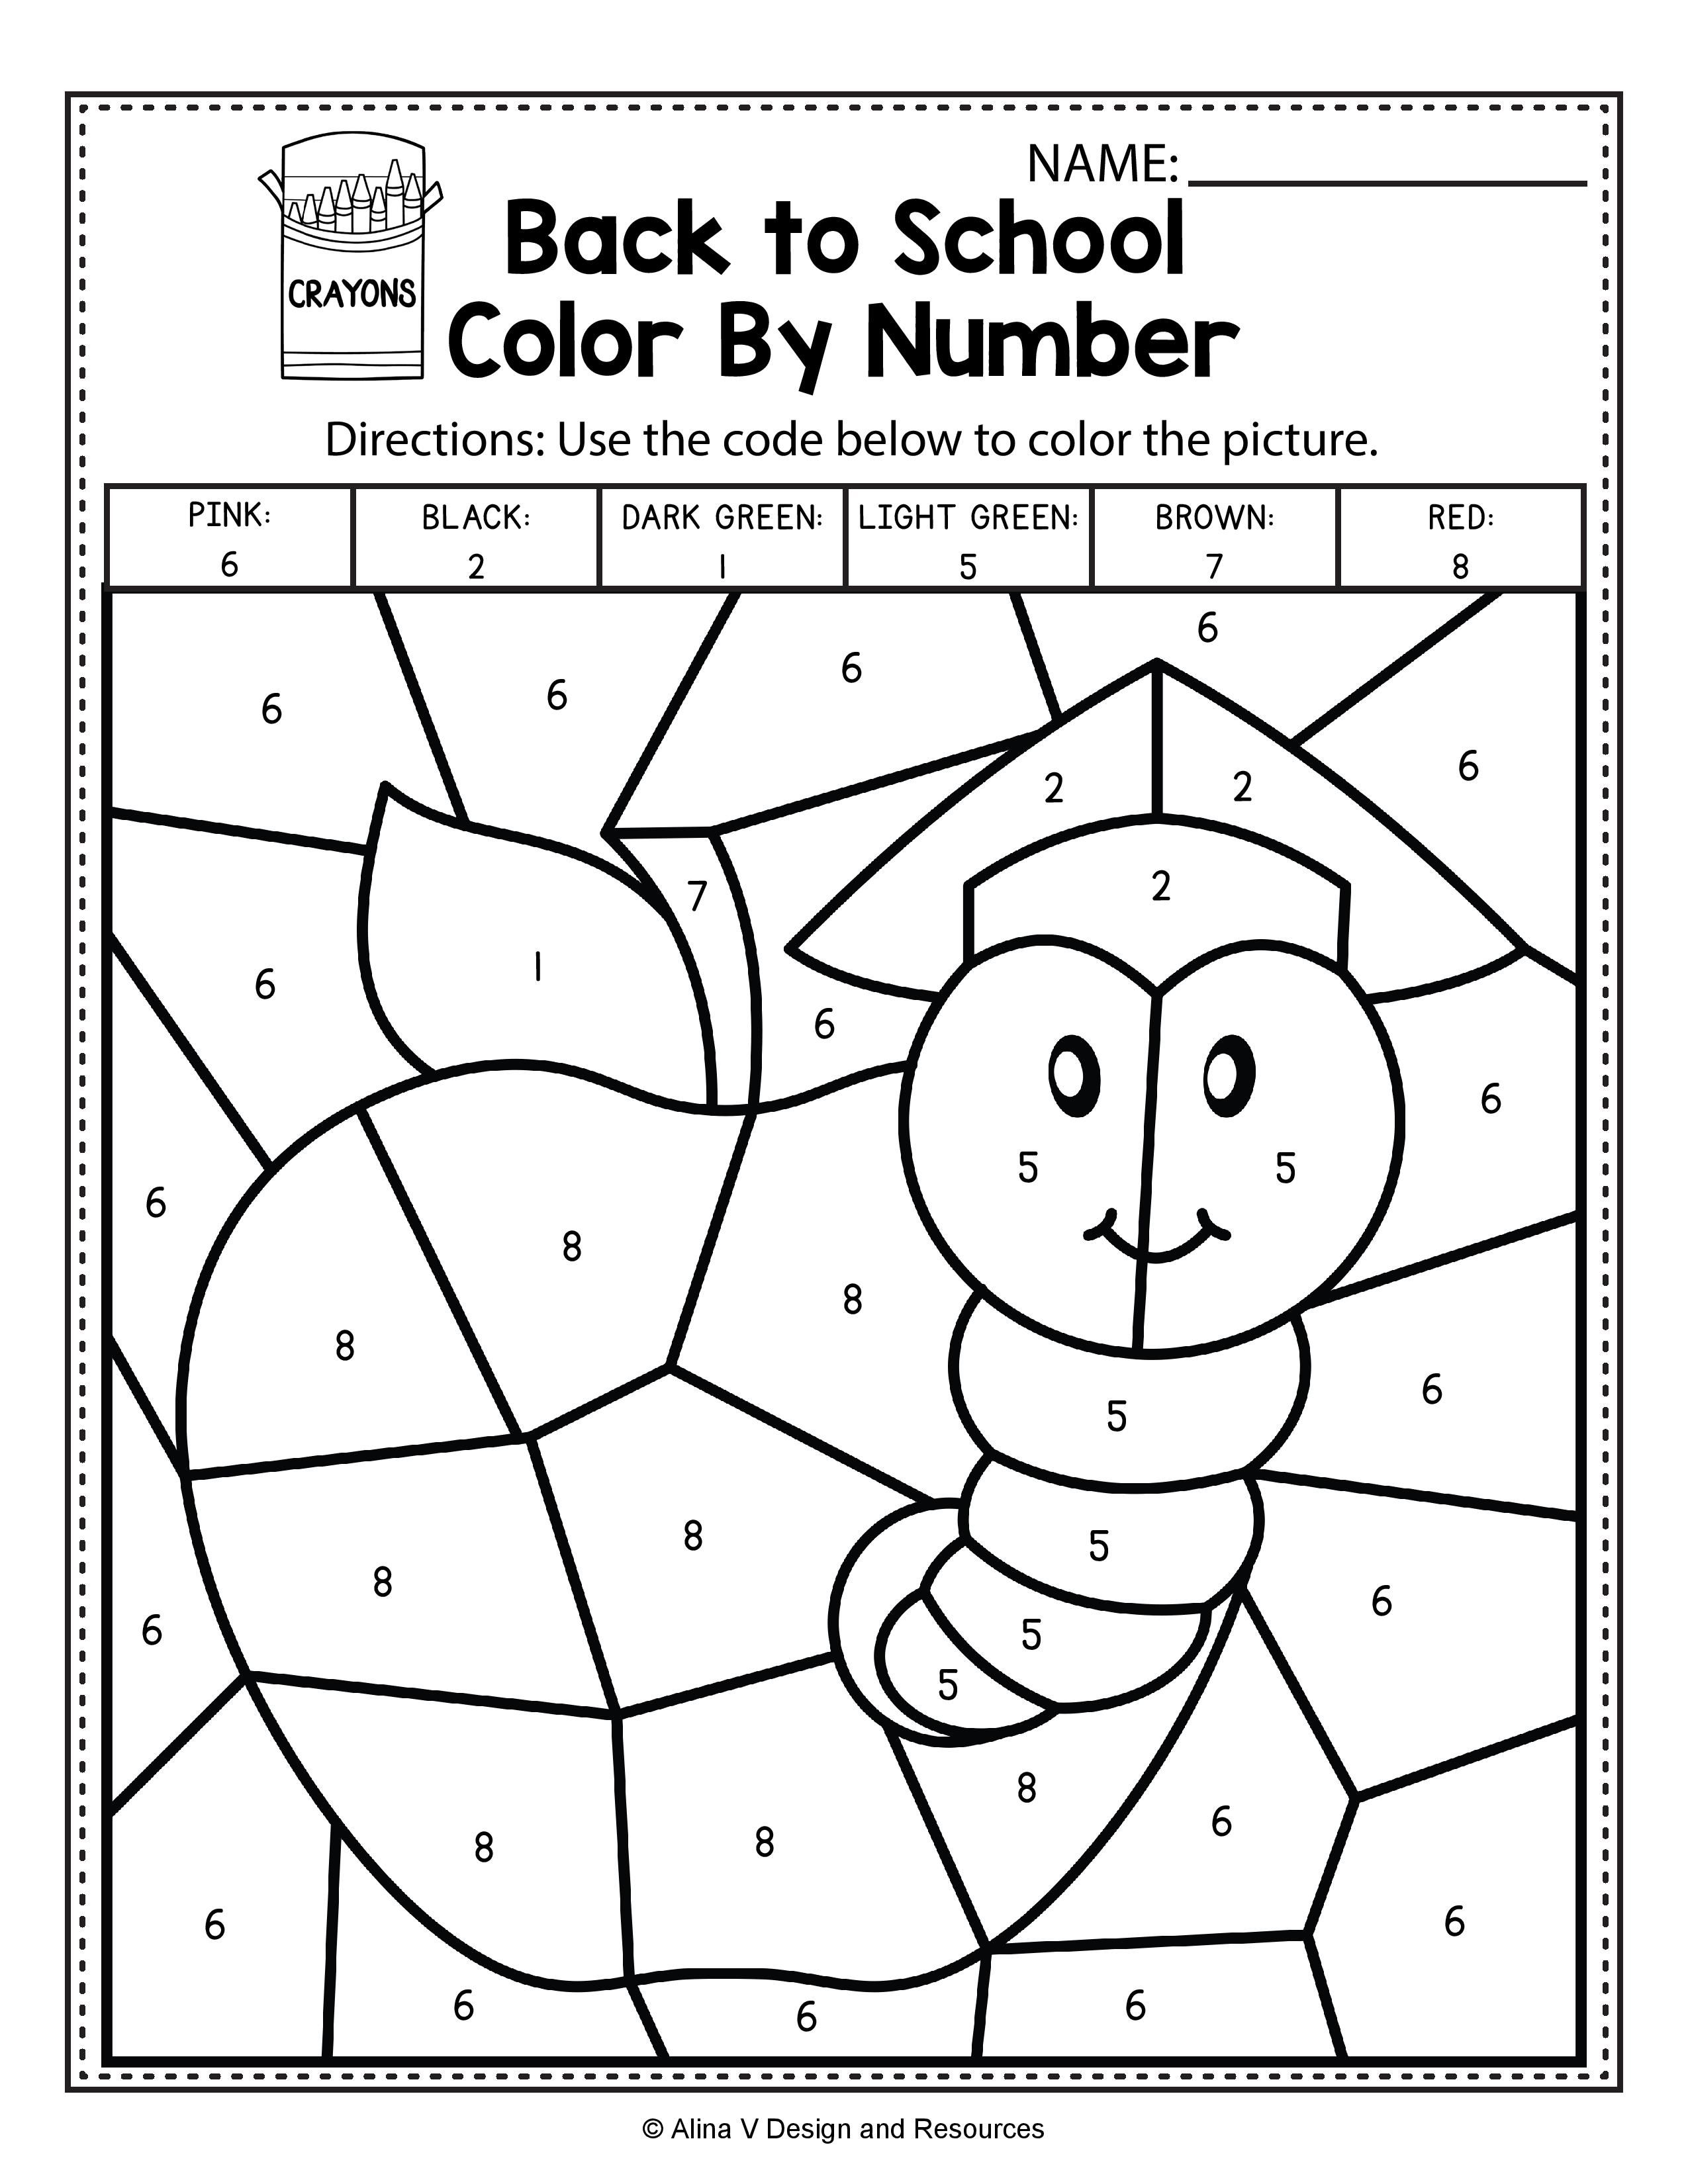 back to school color by number math worksheets and activities for preschool kindergarten and. Black Bedroom Furniture Sets. Home Design Ideas